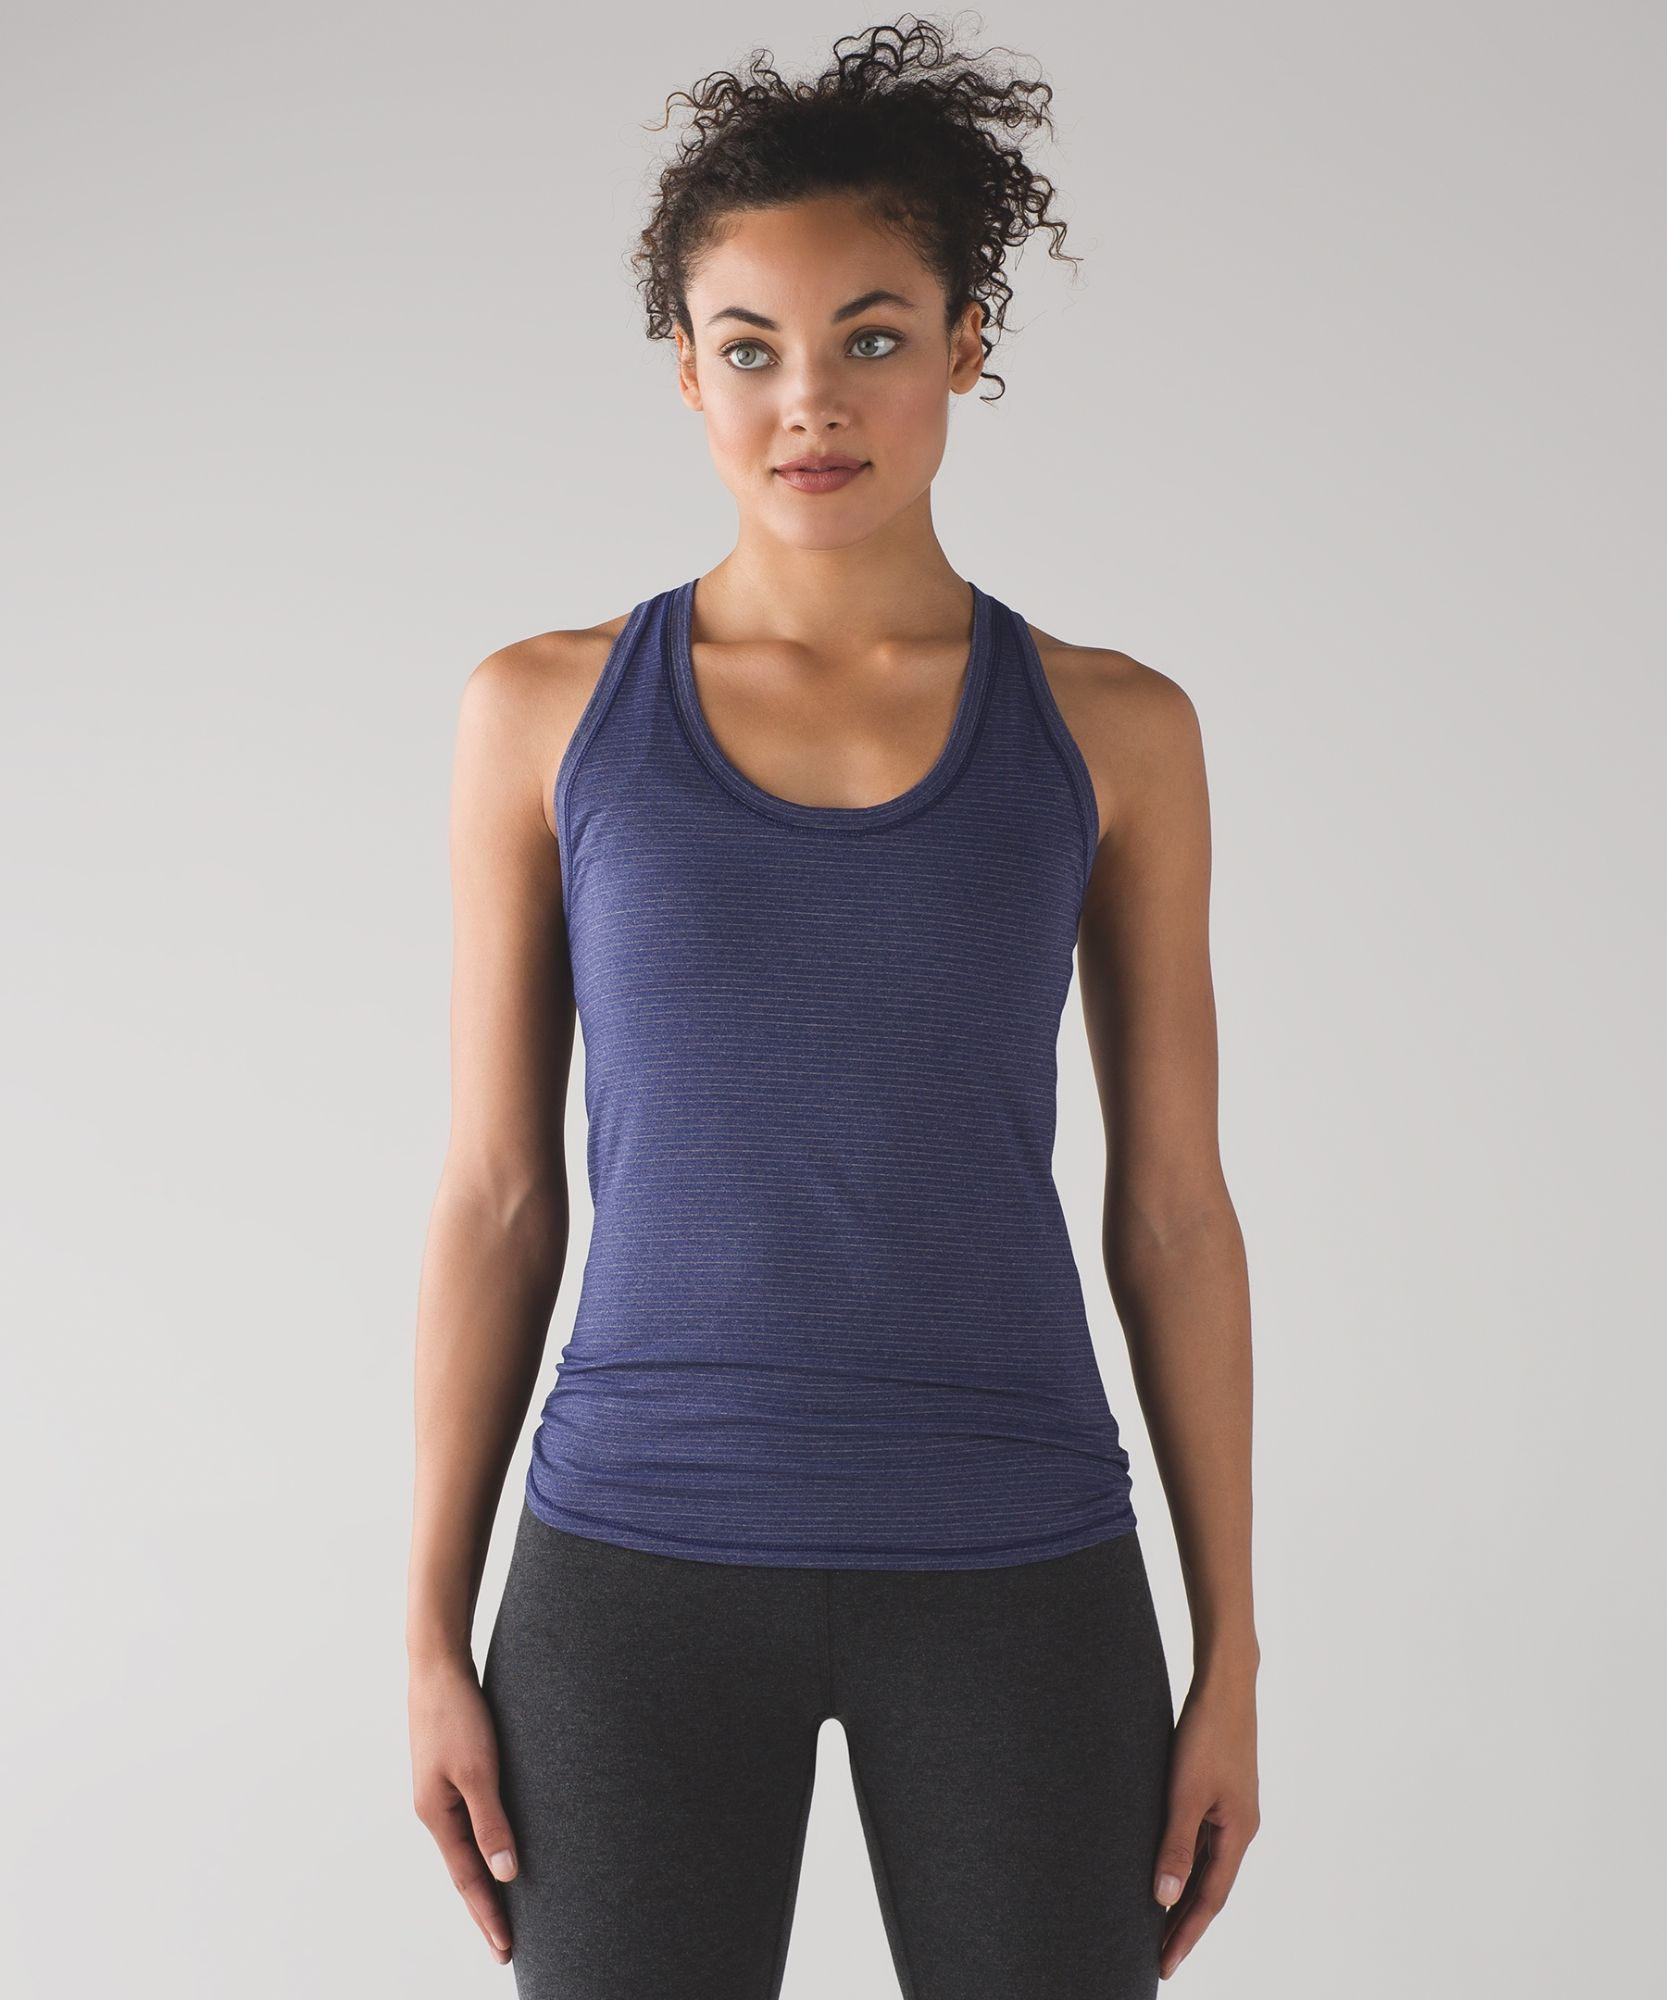 Lululemon tie it up singlet - this will only look right on me in this way